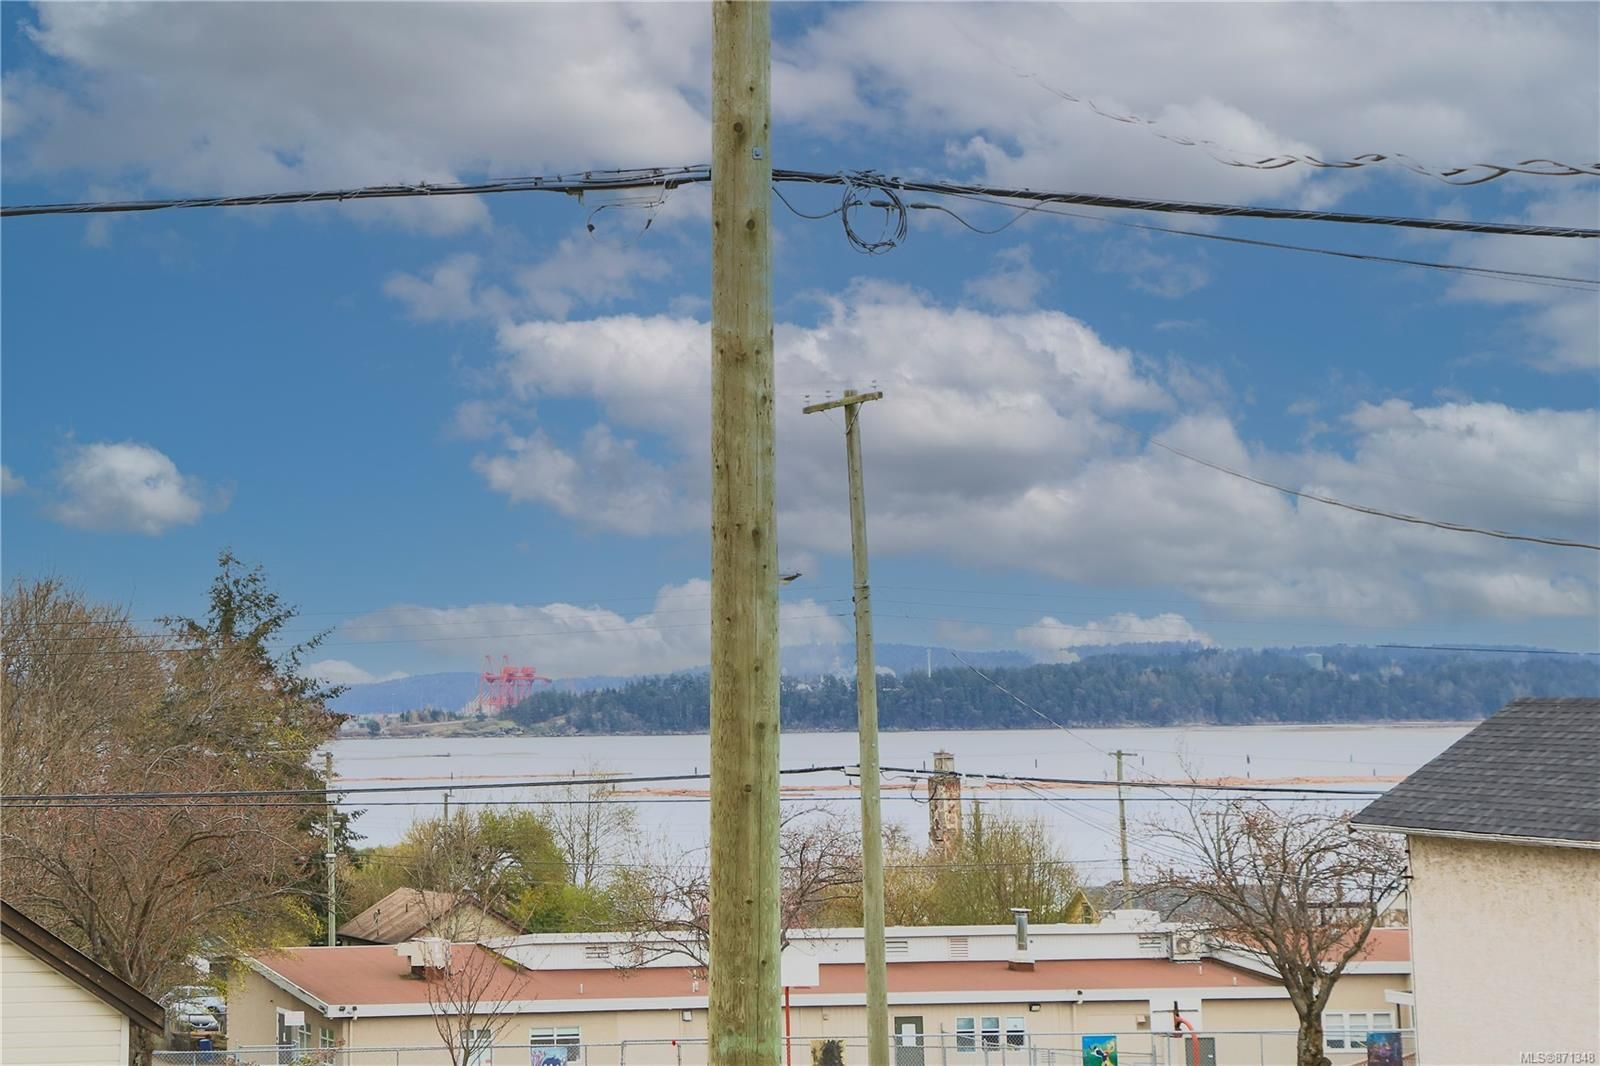 Main Photo: 235 NICOL St in : Na South Nanaimo House for sale (Nanaimo)  : MLS®# 871348